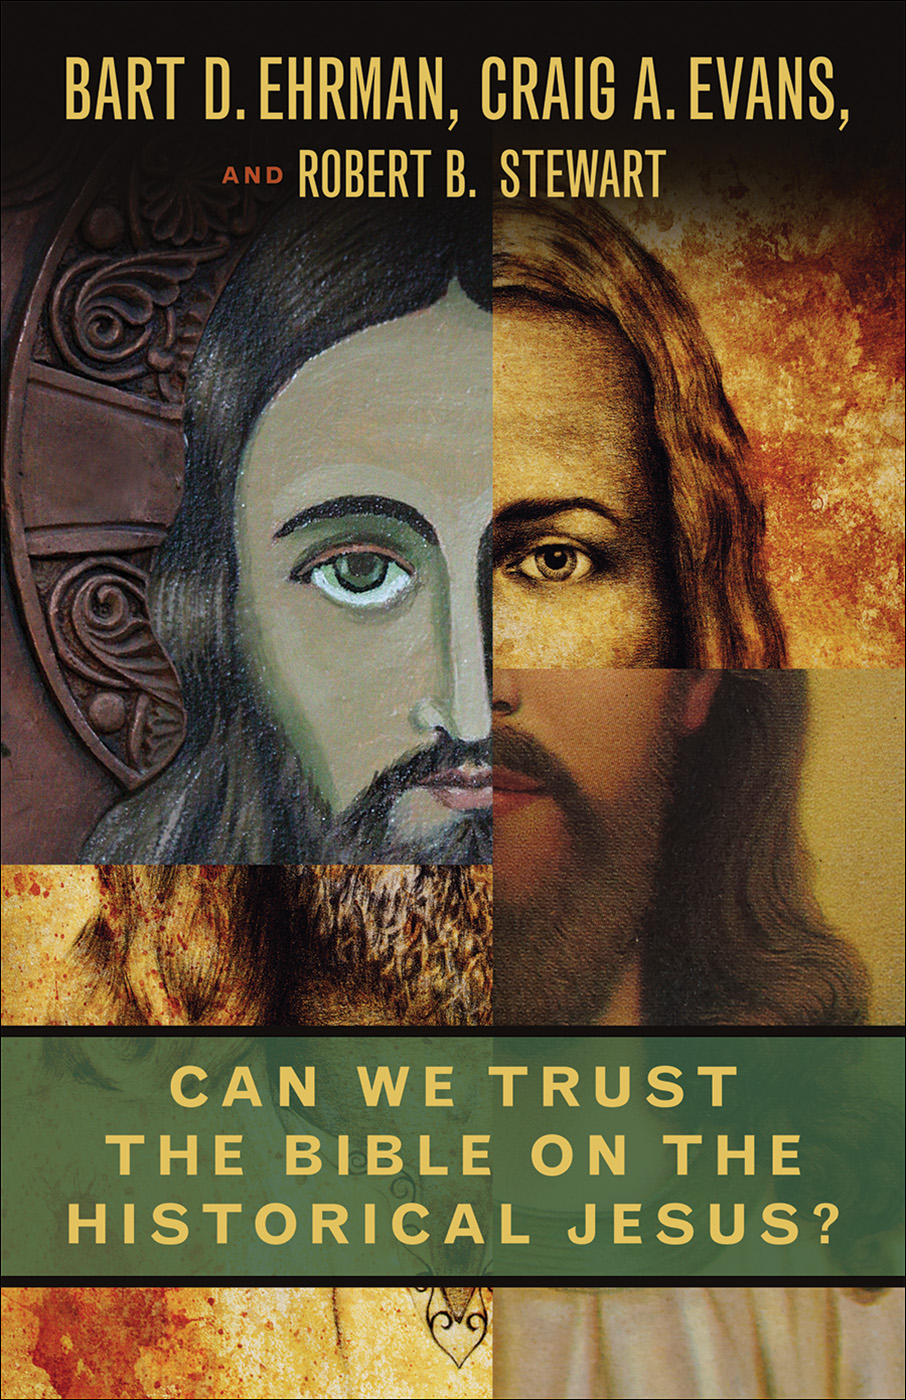 Can We Trust the Bible on the Historical Jesus?